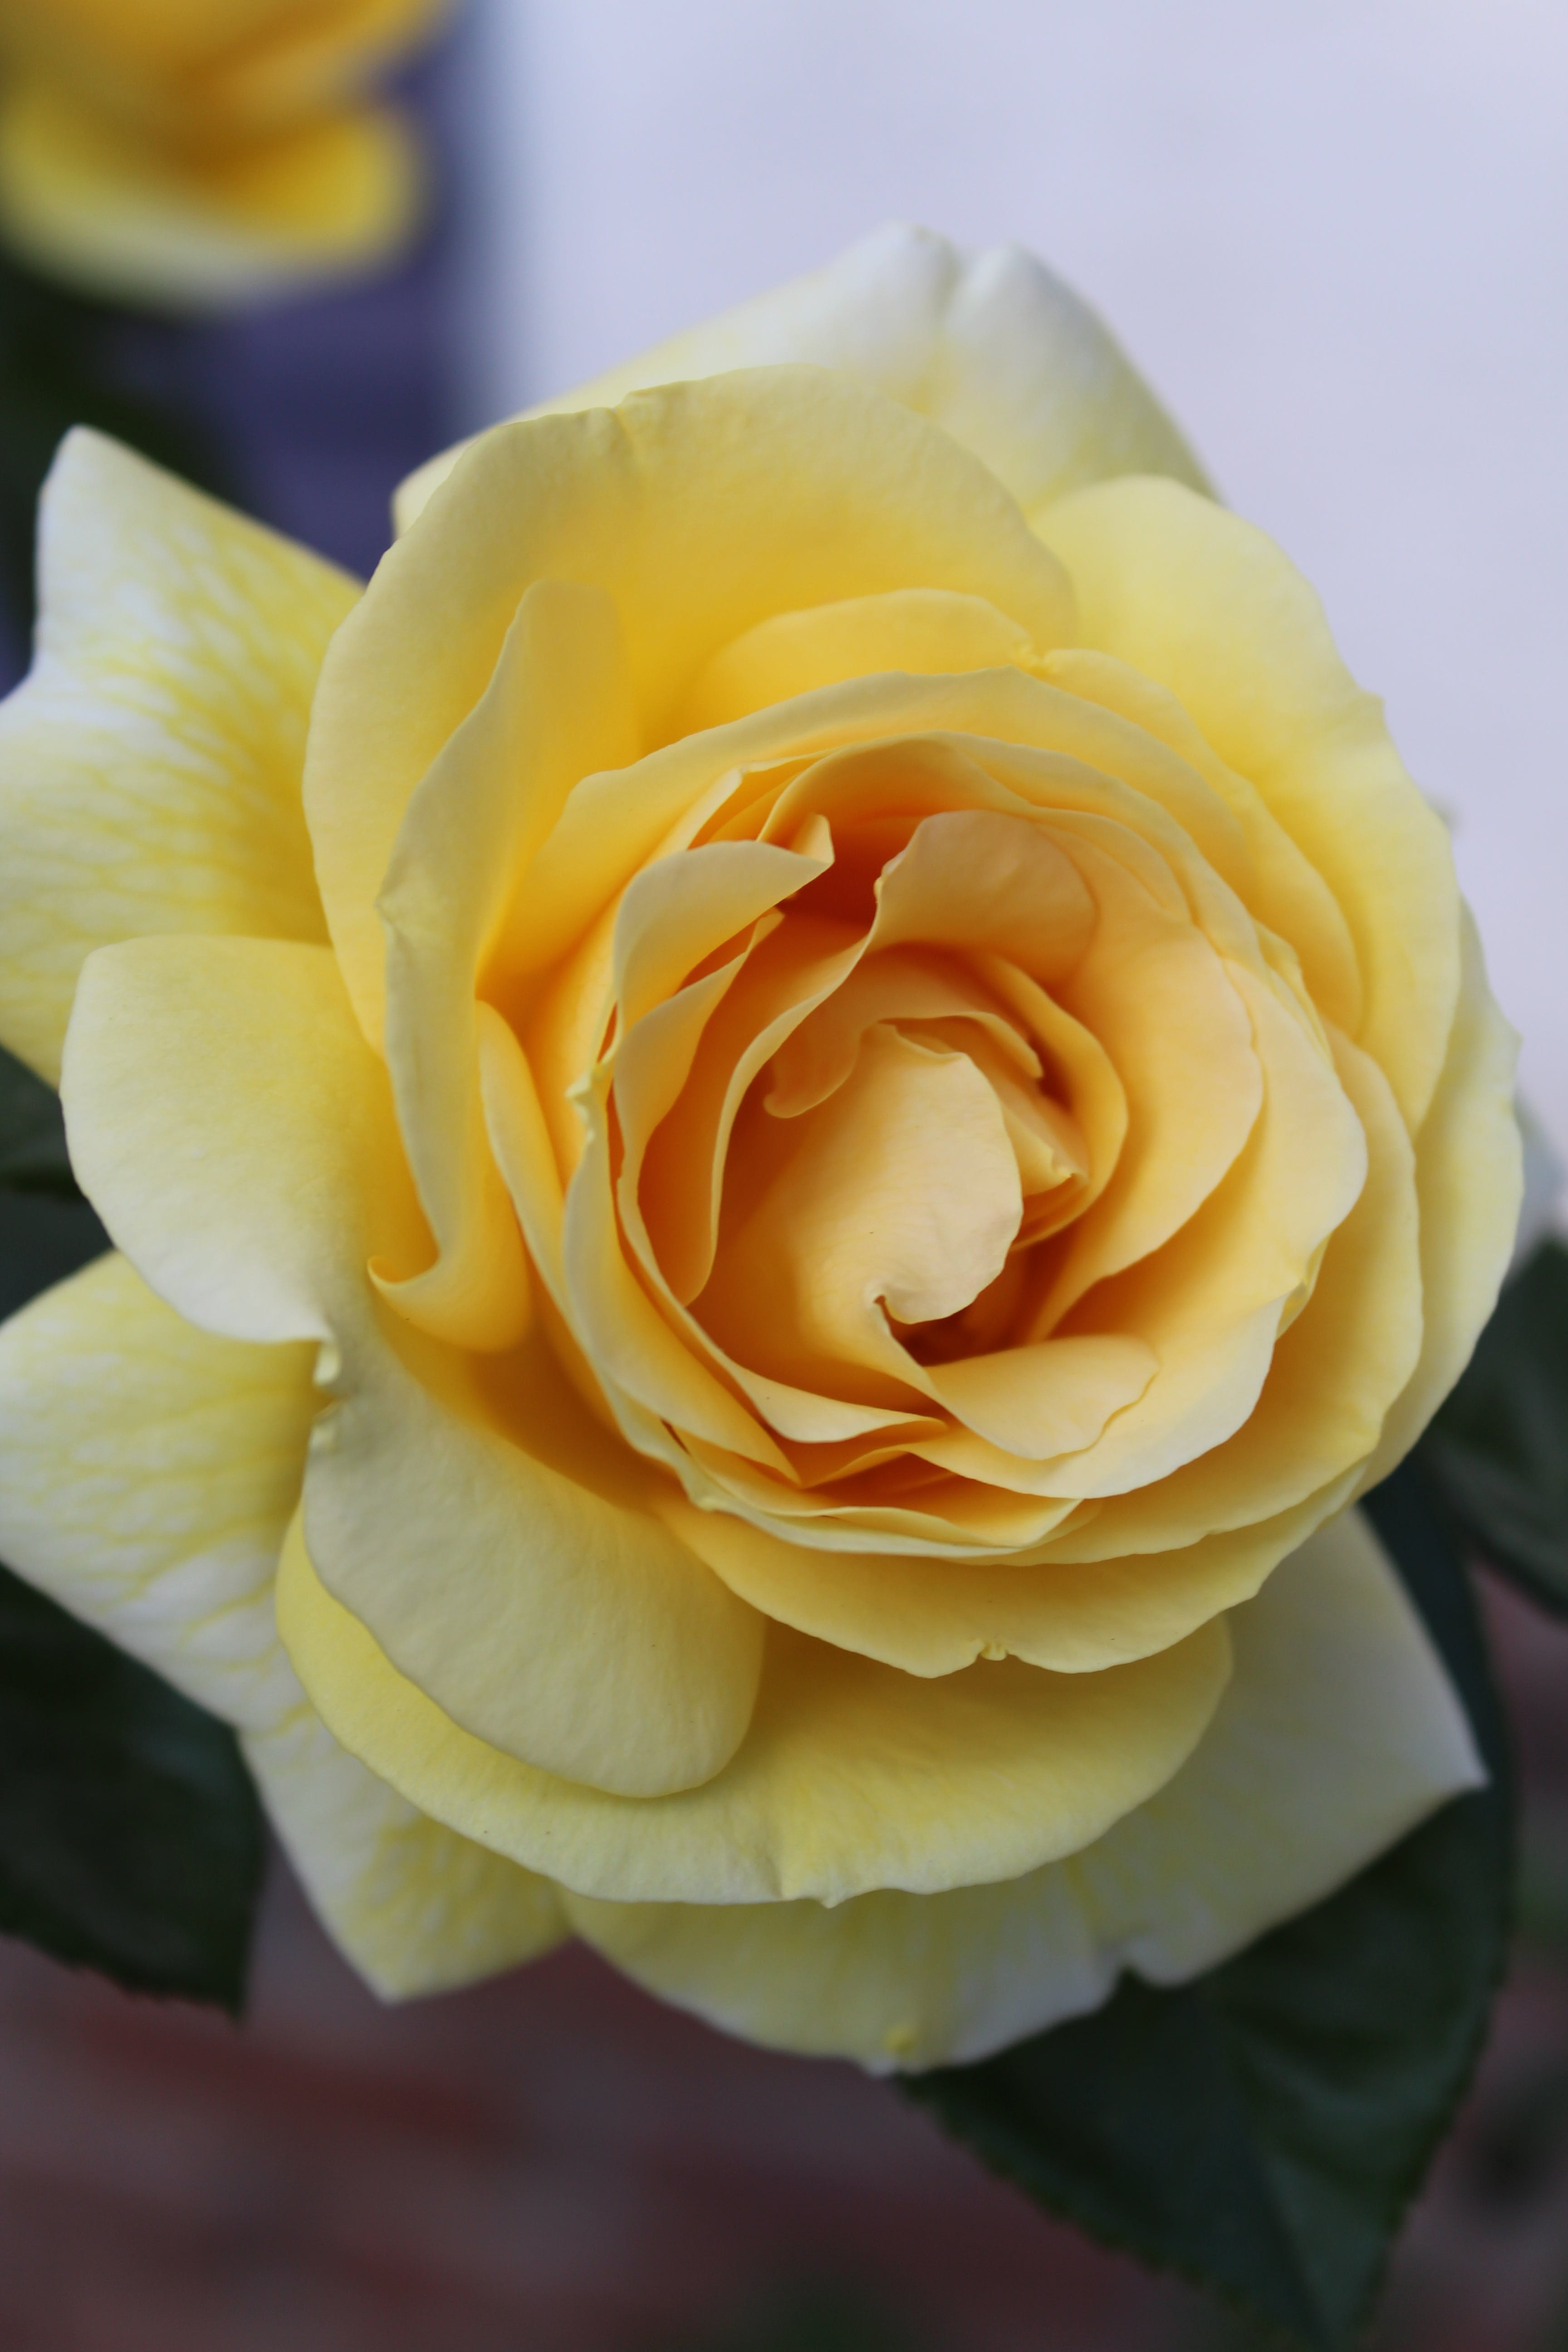 Yellow Rose Flower in Close-up Photography